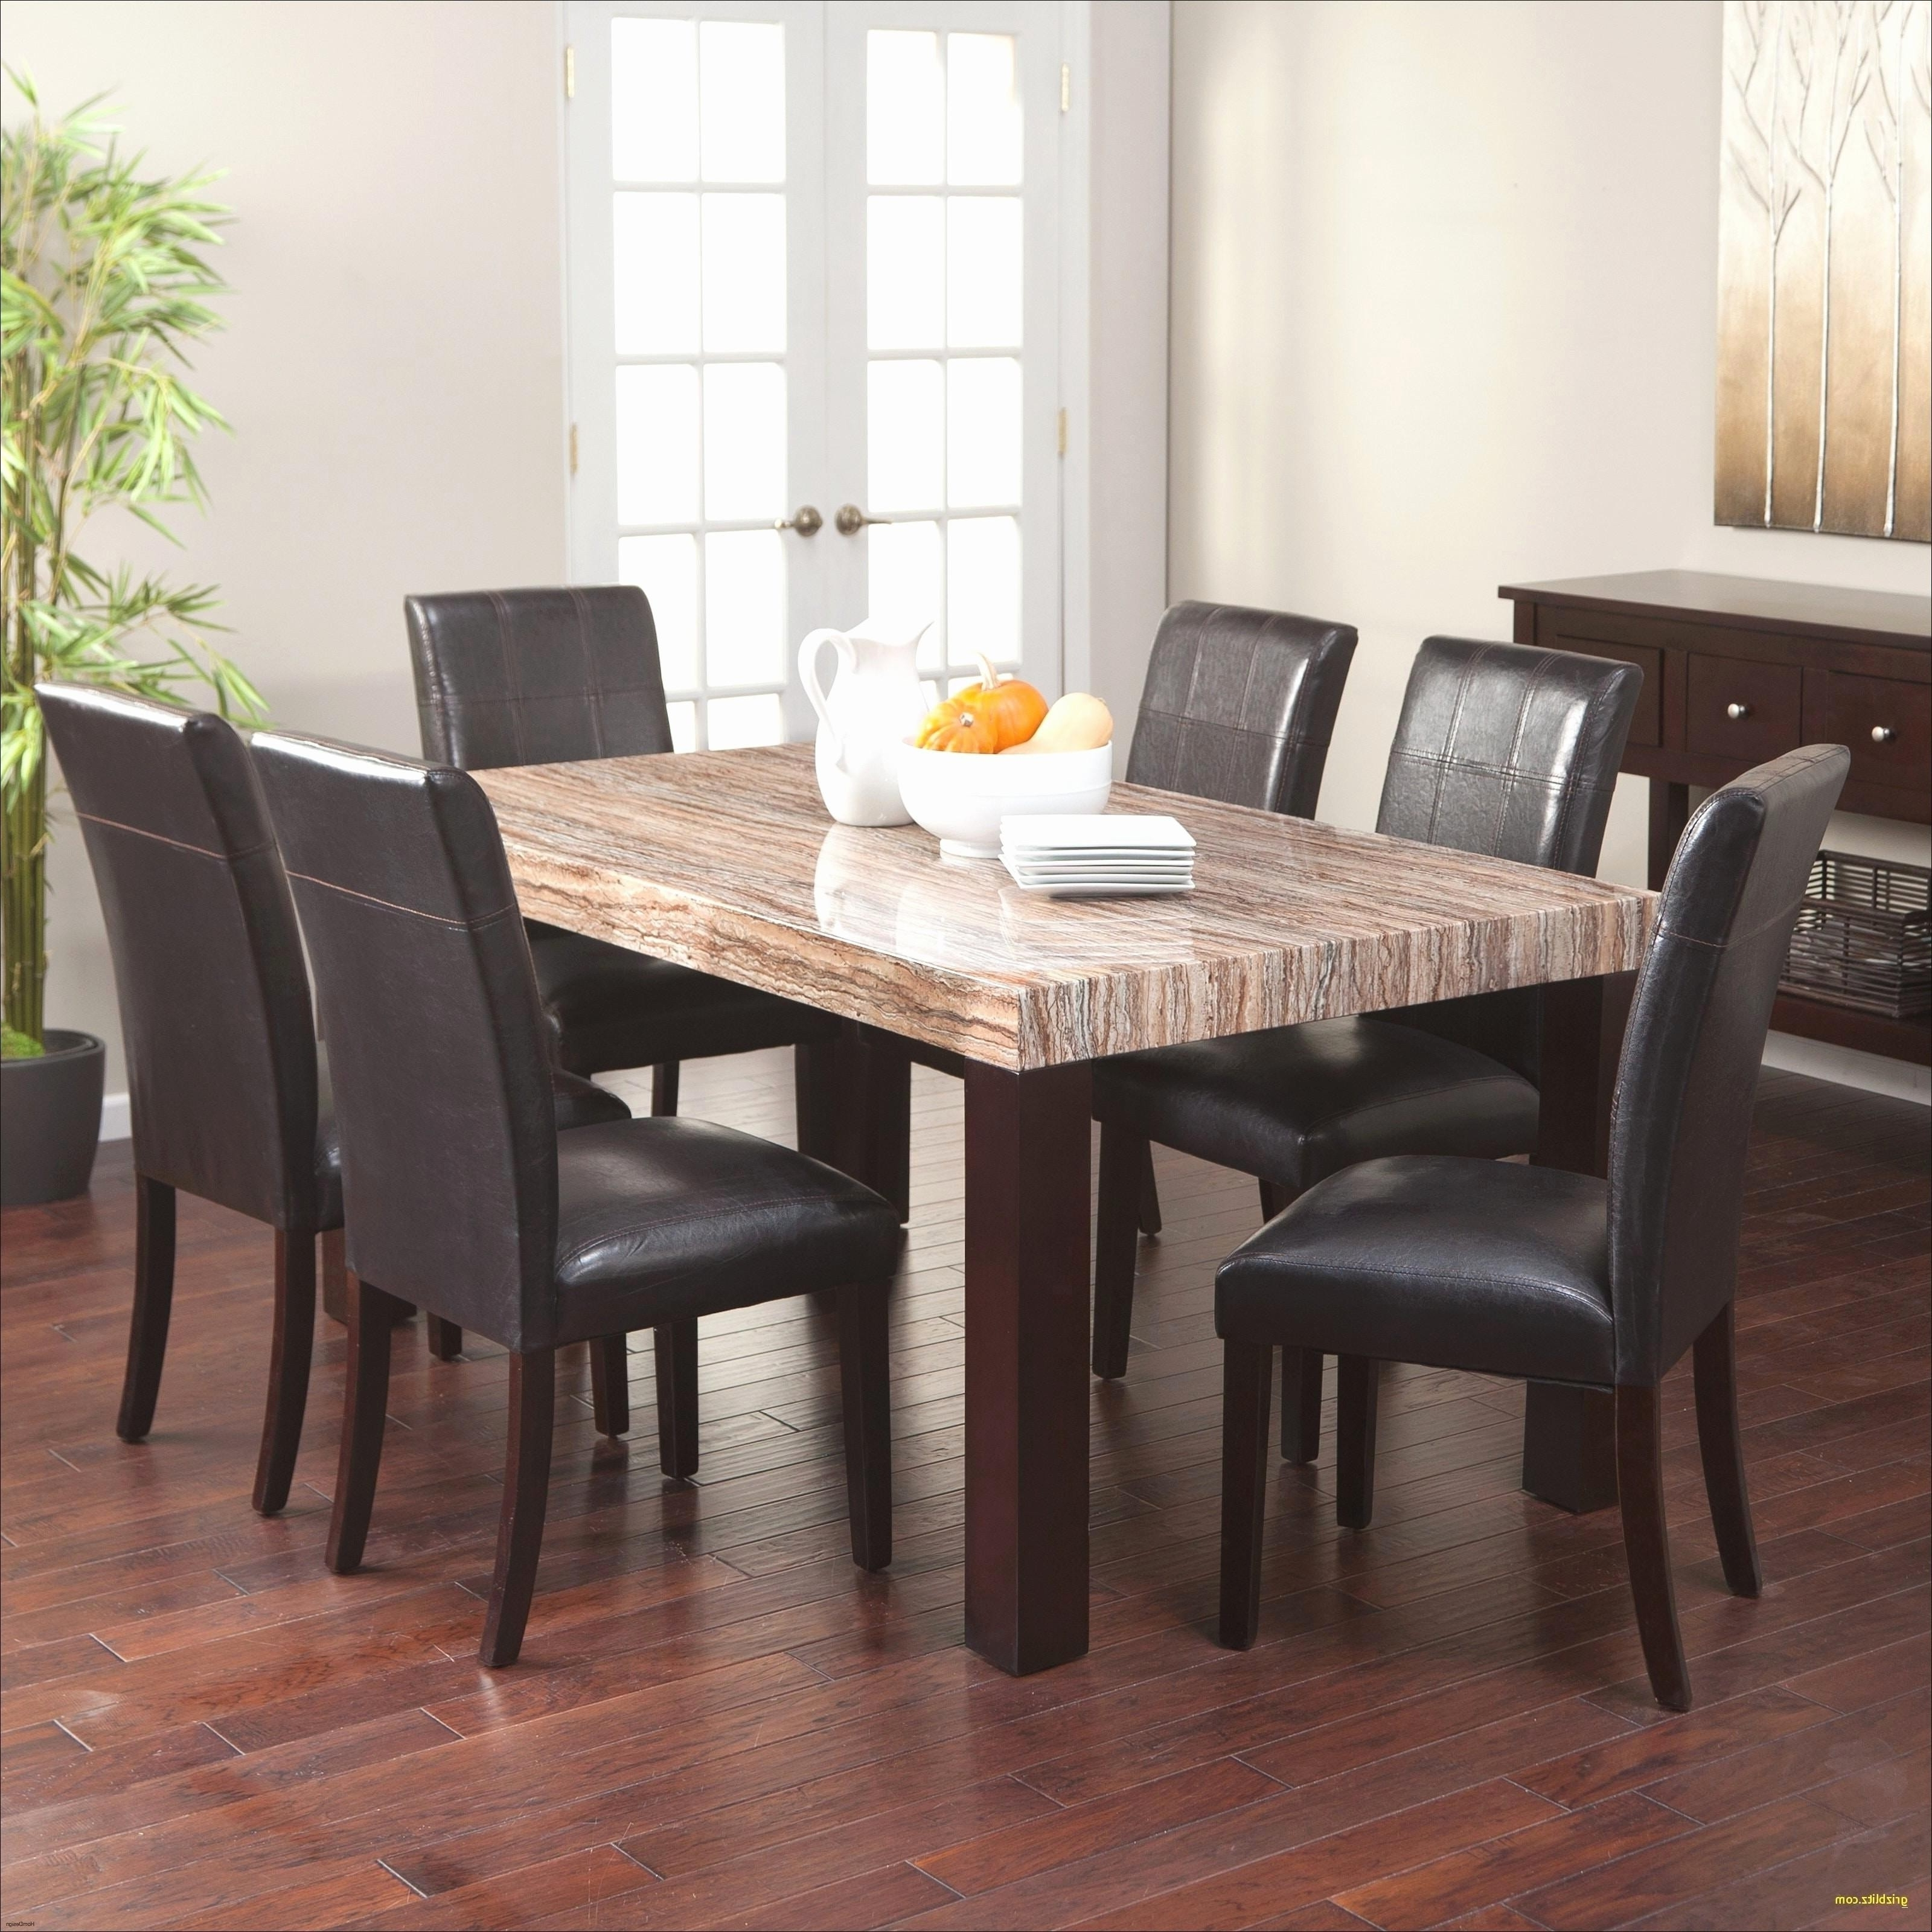 Round Glass Dining Table Sets For 4 Lovely Cheap Dining Room Tables Intended For Famous Cheap Dining Sets (View 15 of 25)